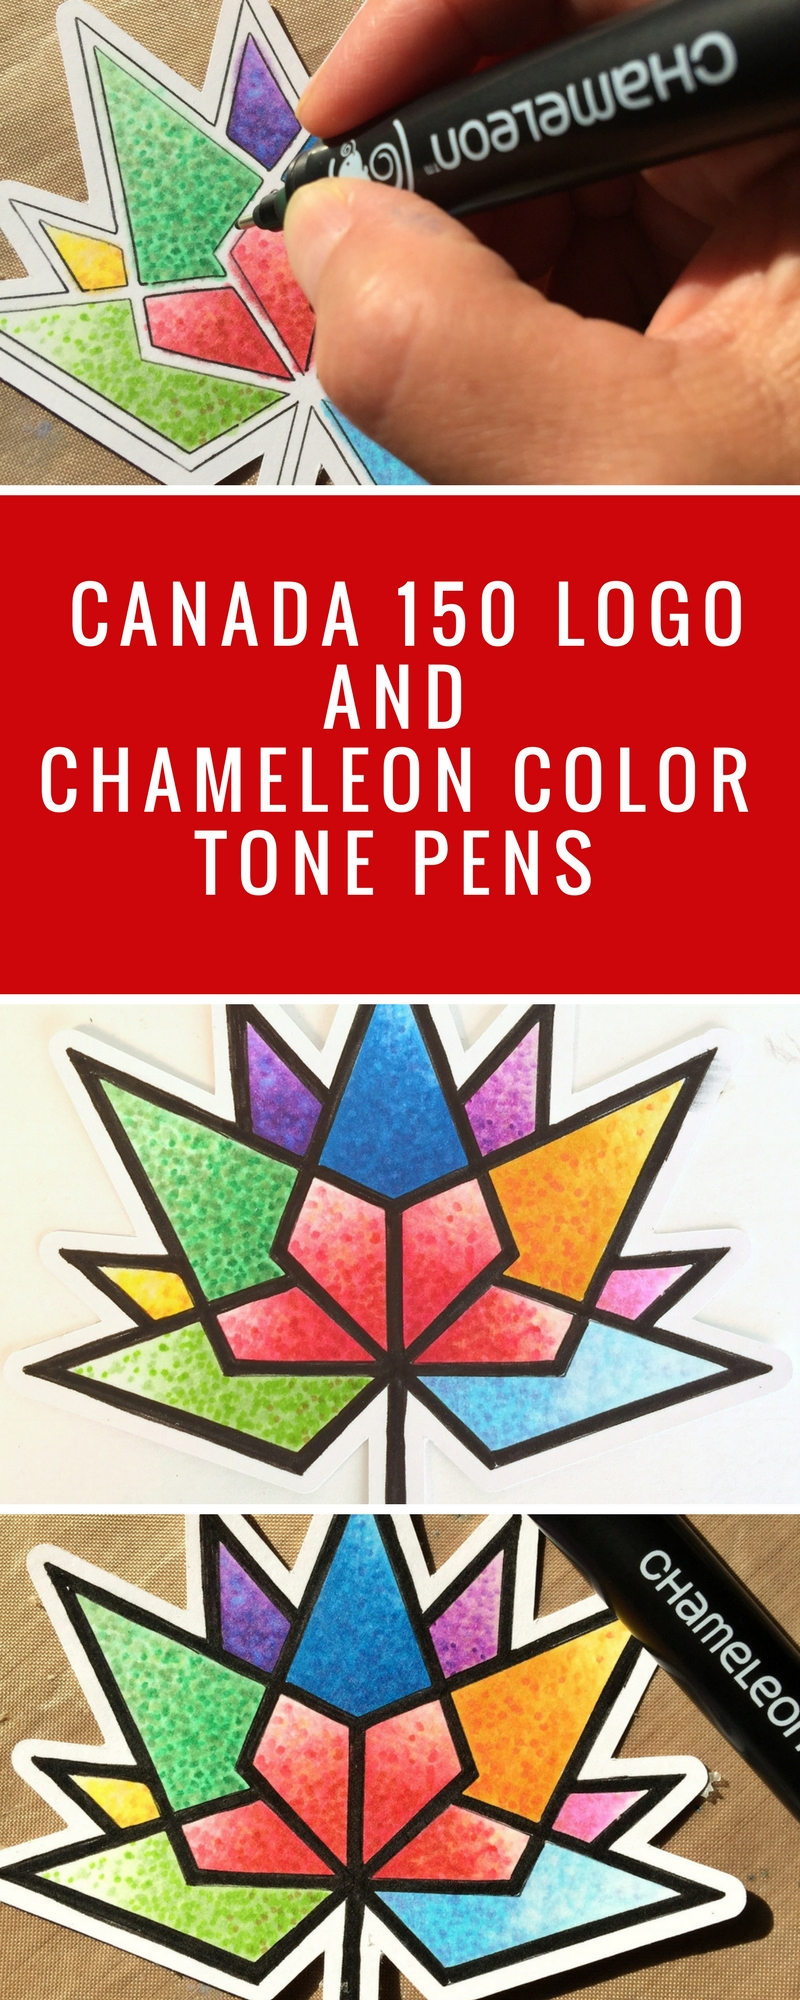 Canada 150 Logo | Design With Chameleon Pens | Download FREE Canada 150 Logo | Adult Coloring